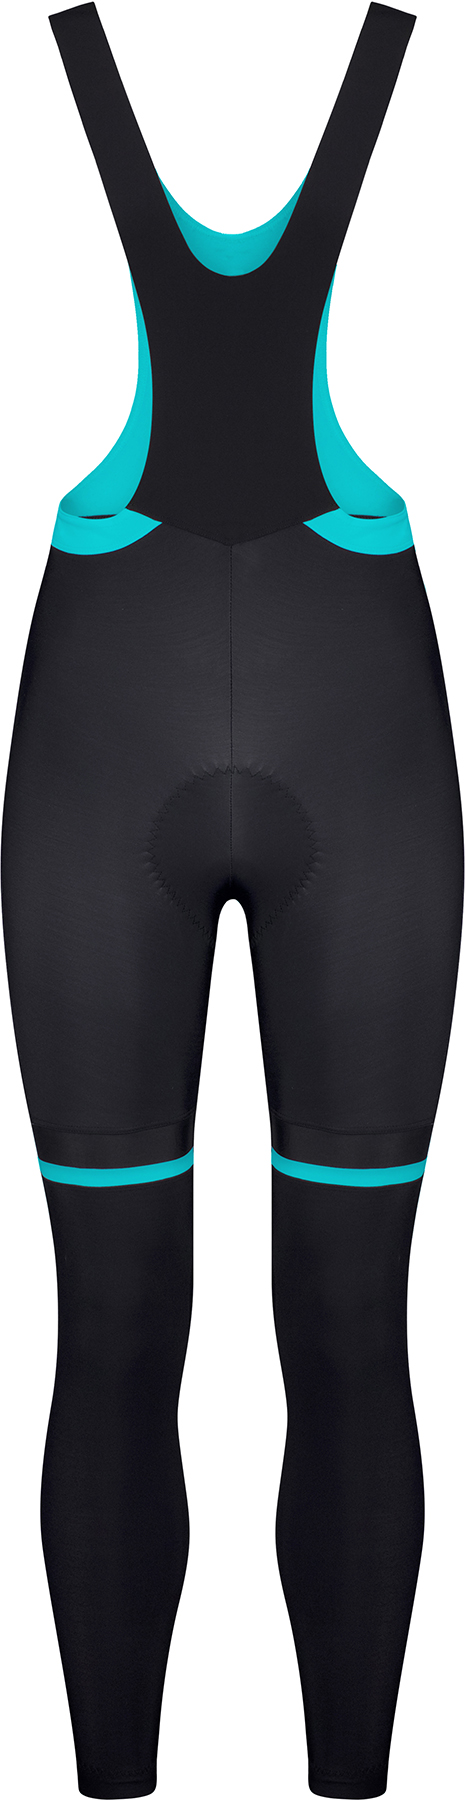 Etxeondo Women's Koma Bib Tights | Trousers